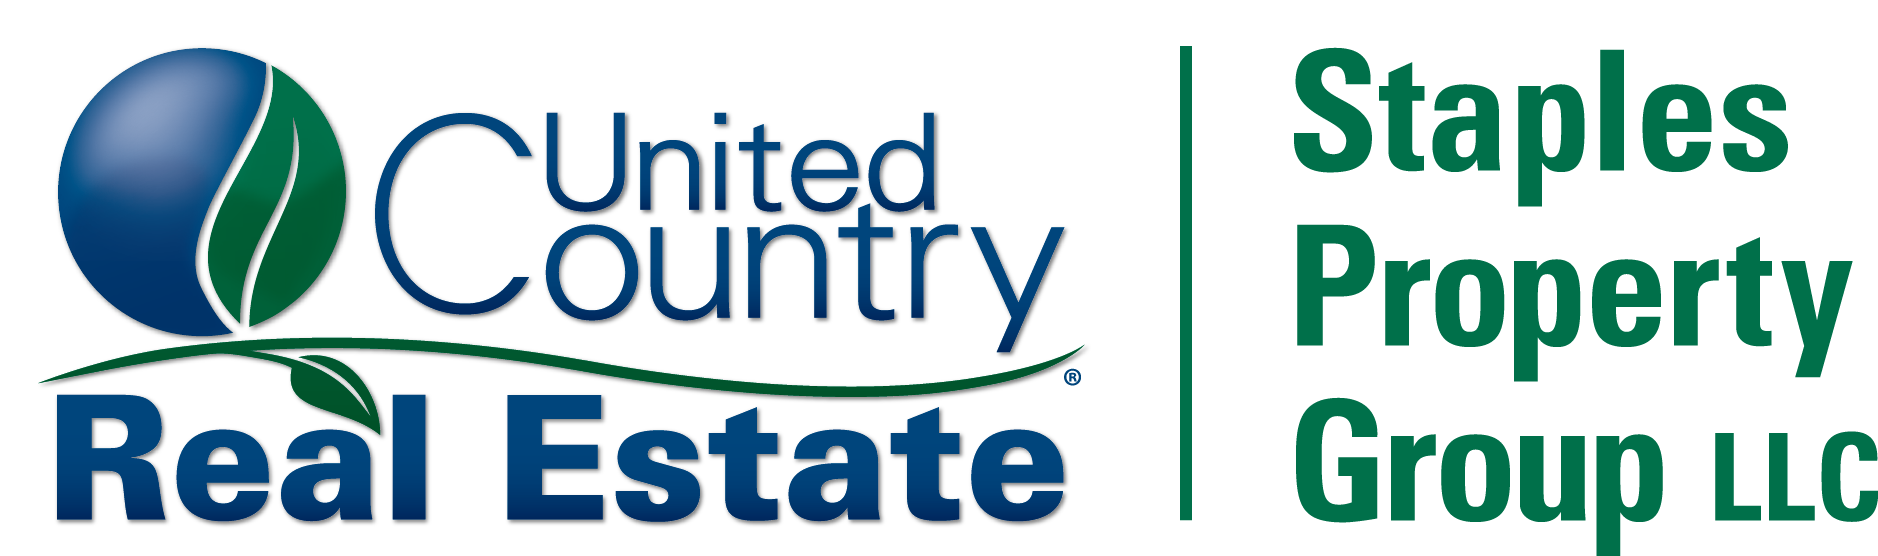 United Country Staples Property Group LLC_H